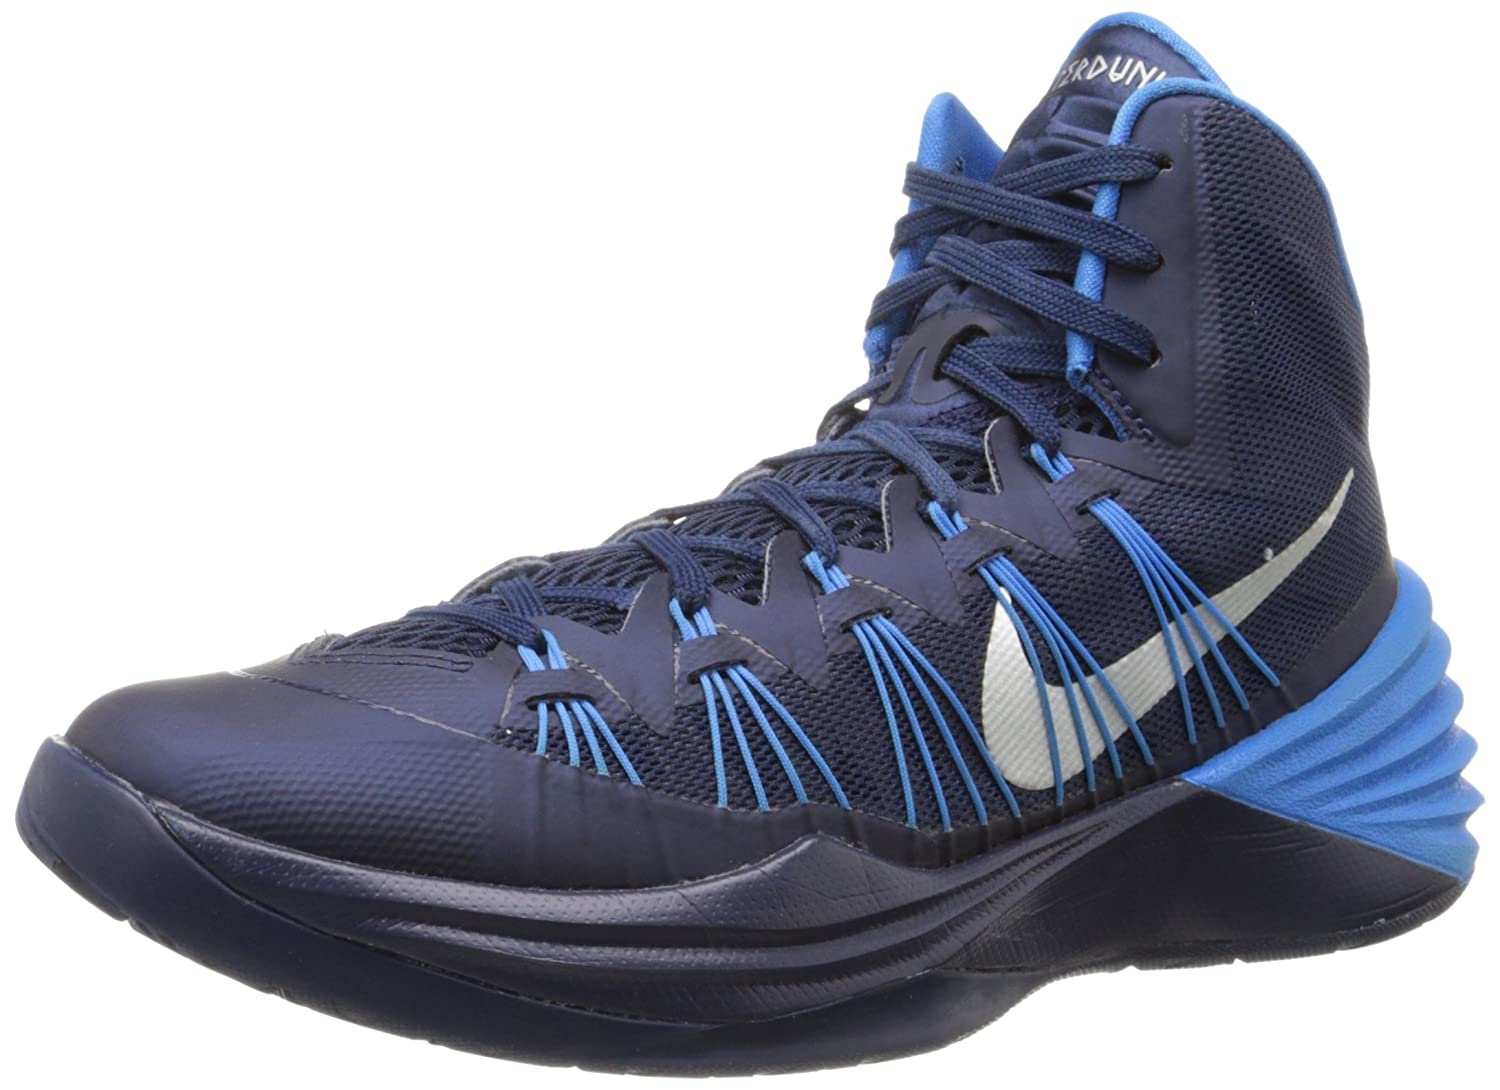 hot sale online 09c02 68d03 Nike Hyperdunk 2013 TB - Mid Navy   Metallic Silver-Photo Blue, 12 D US   Amazon.ca  Shoes   Handbags